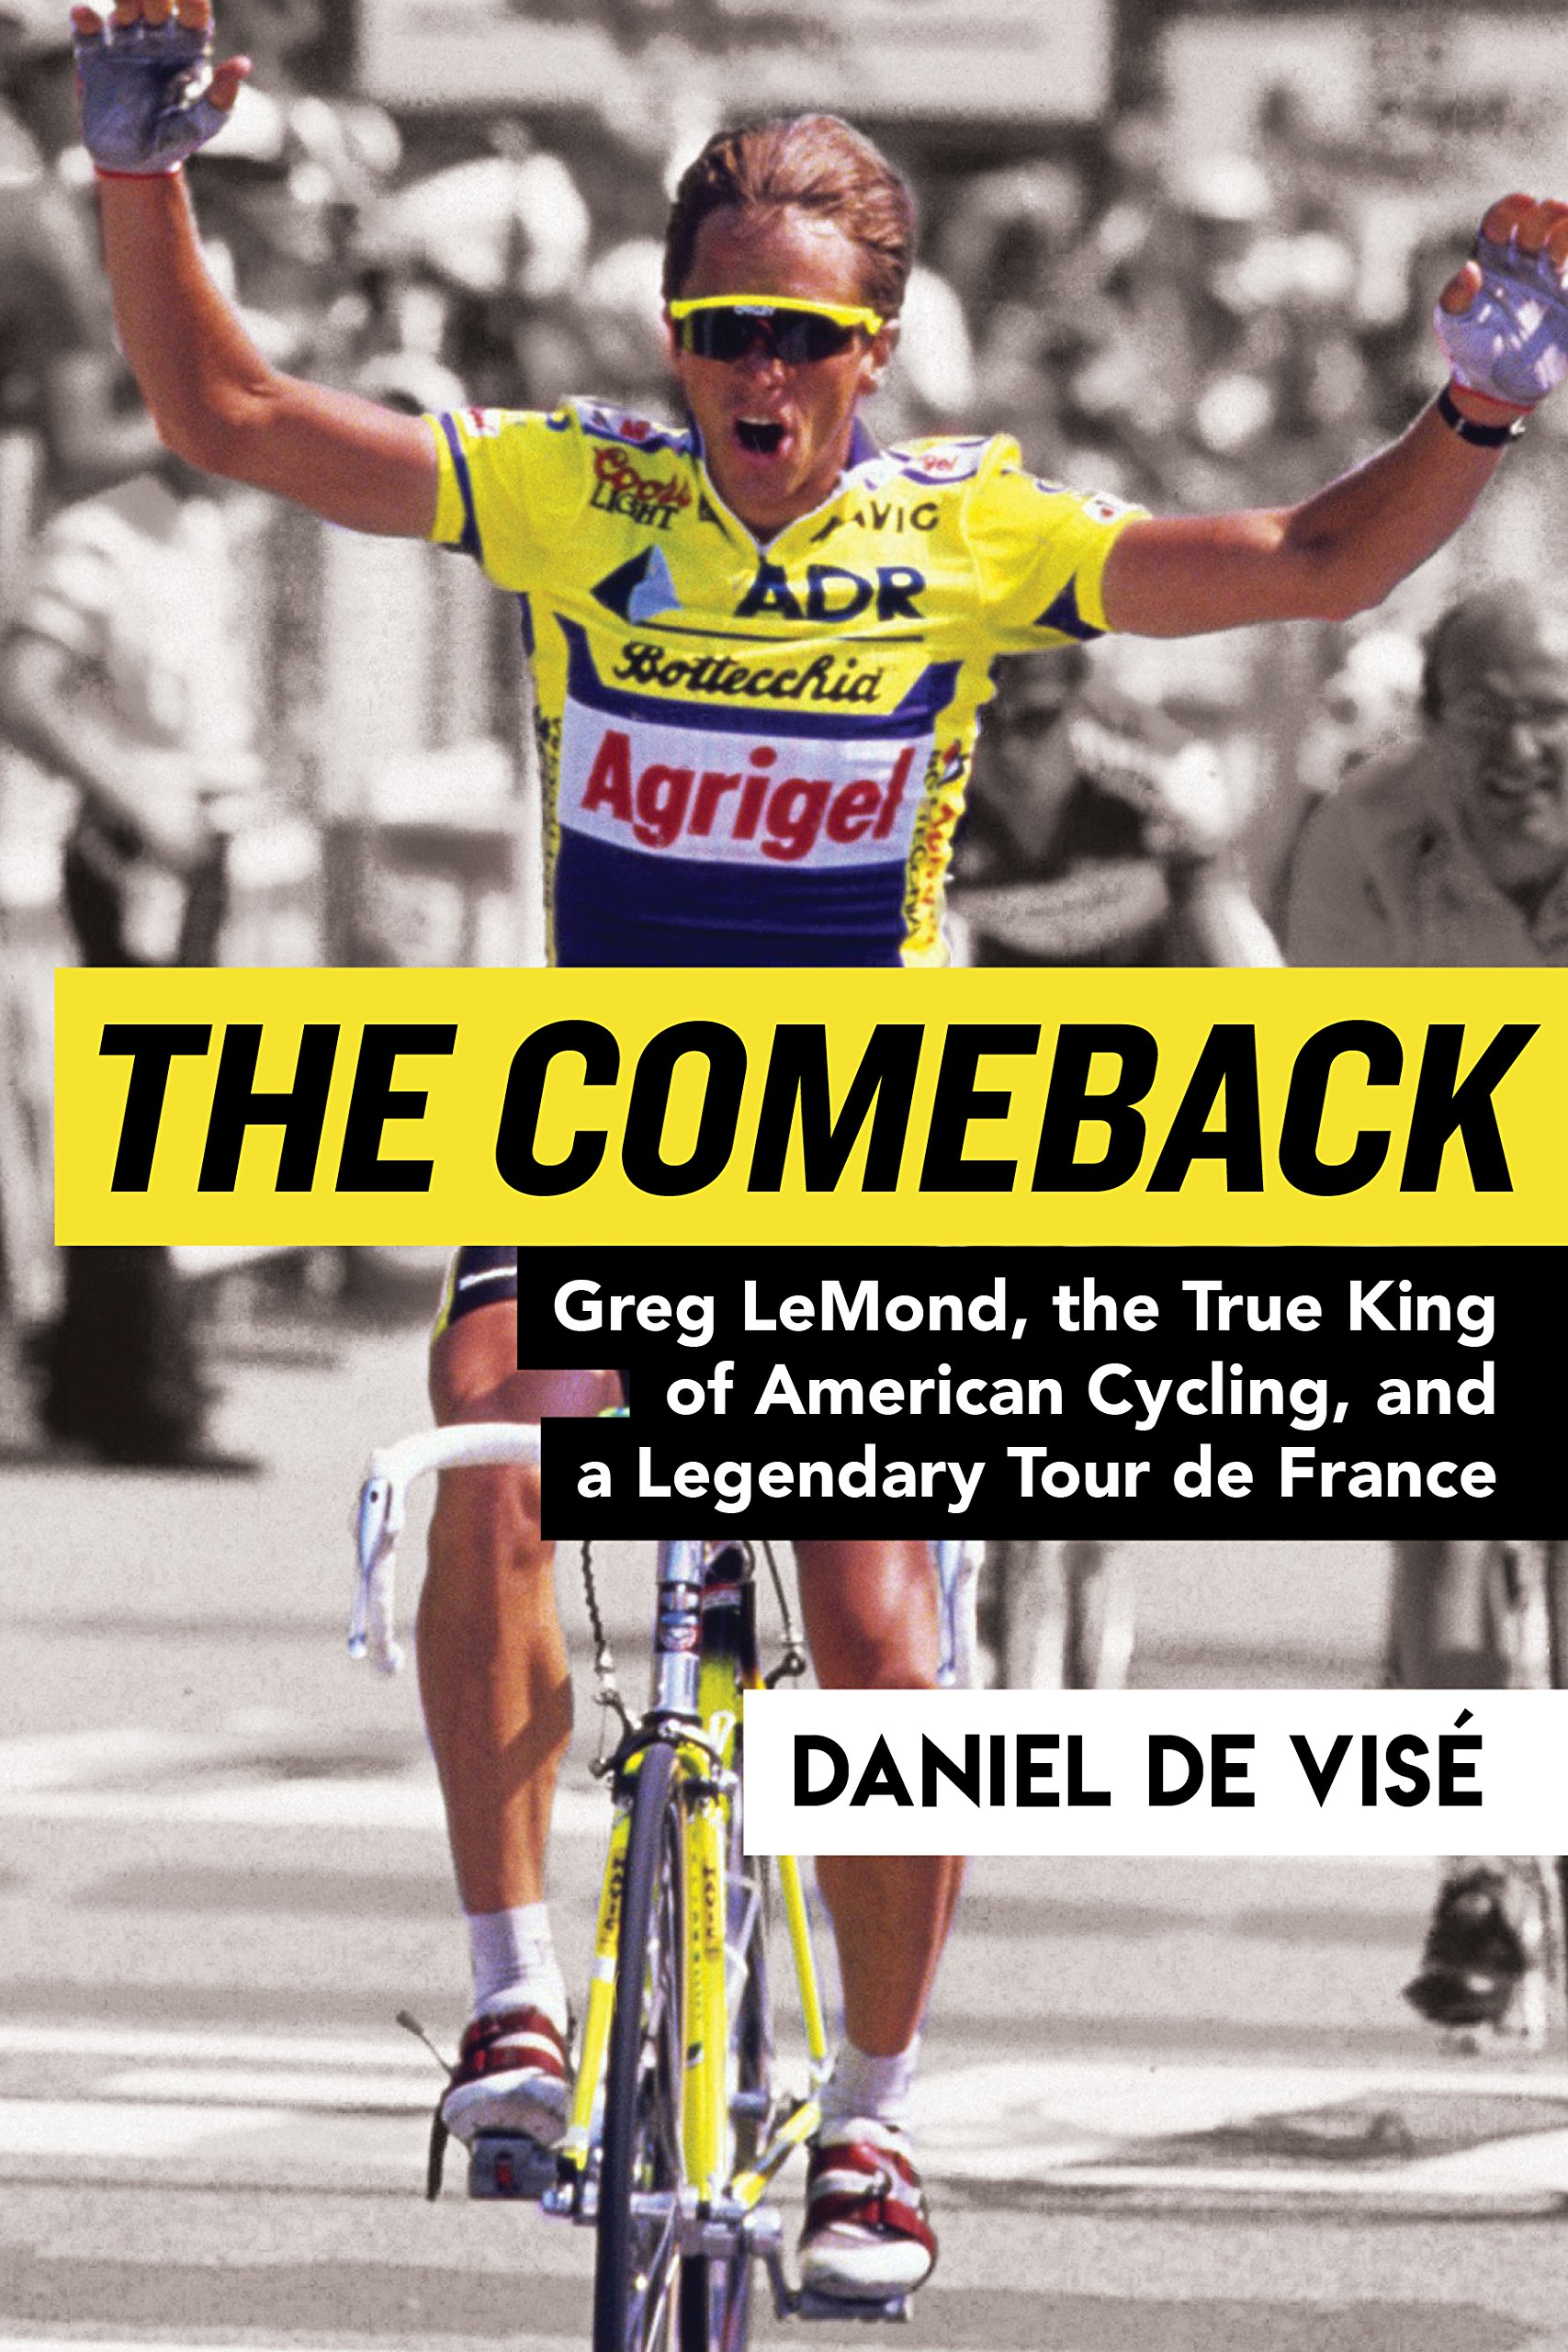 Image OfThe Comeback: Greg LeMond, The True King Of American Cycling, And A Legendary Tour De France